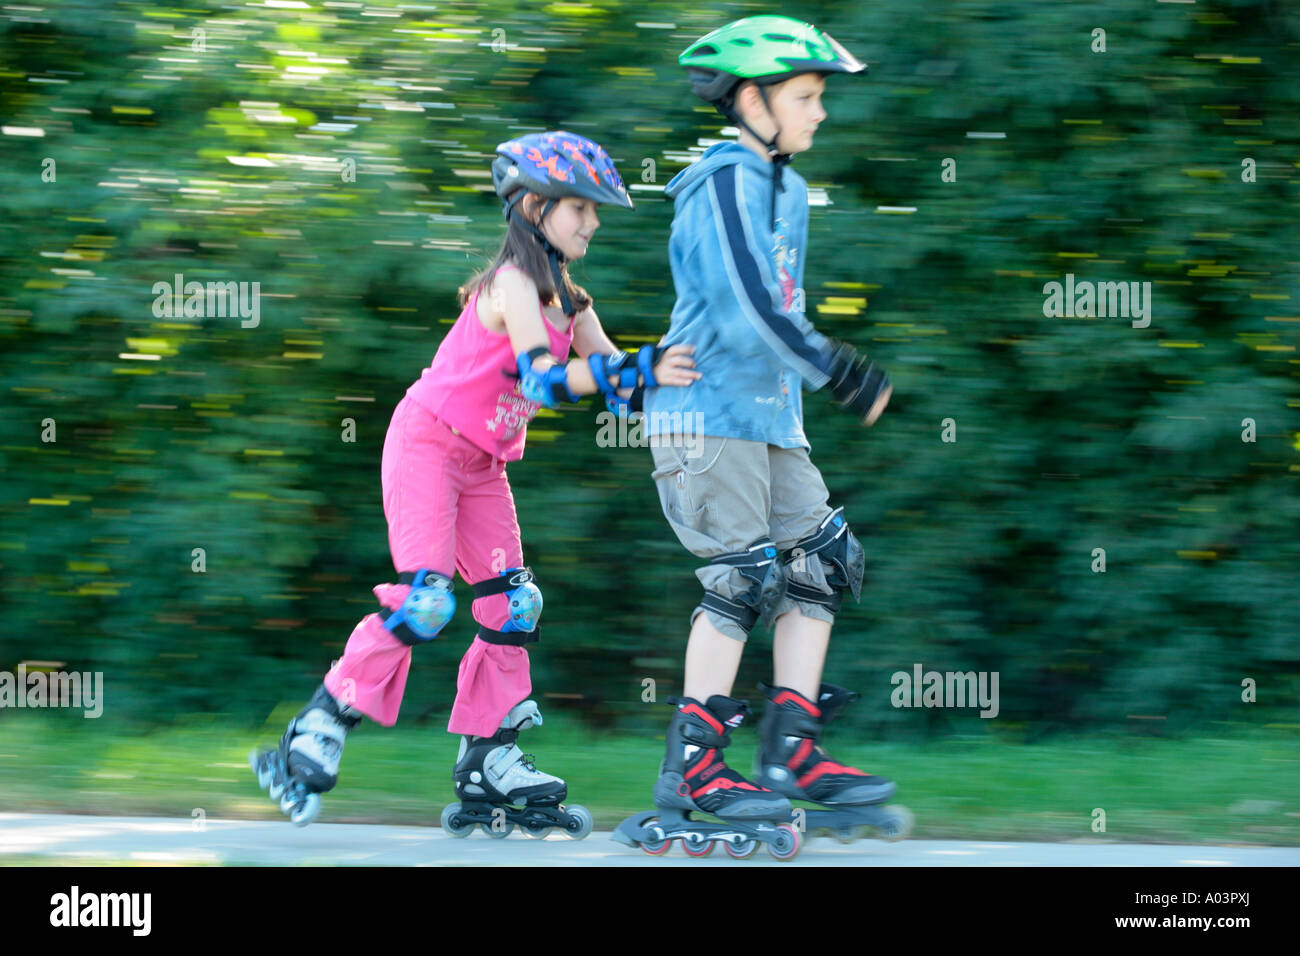 young skater pushing her big brother - Stock Image